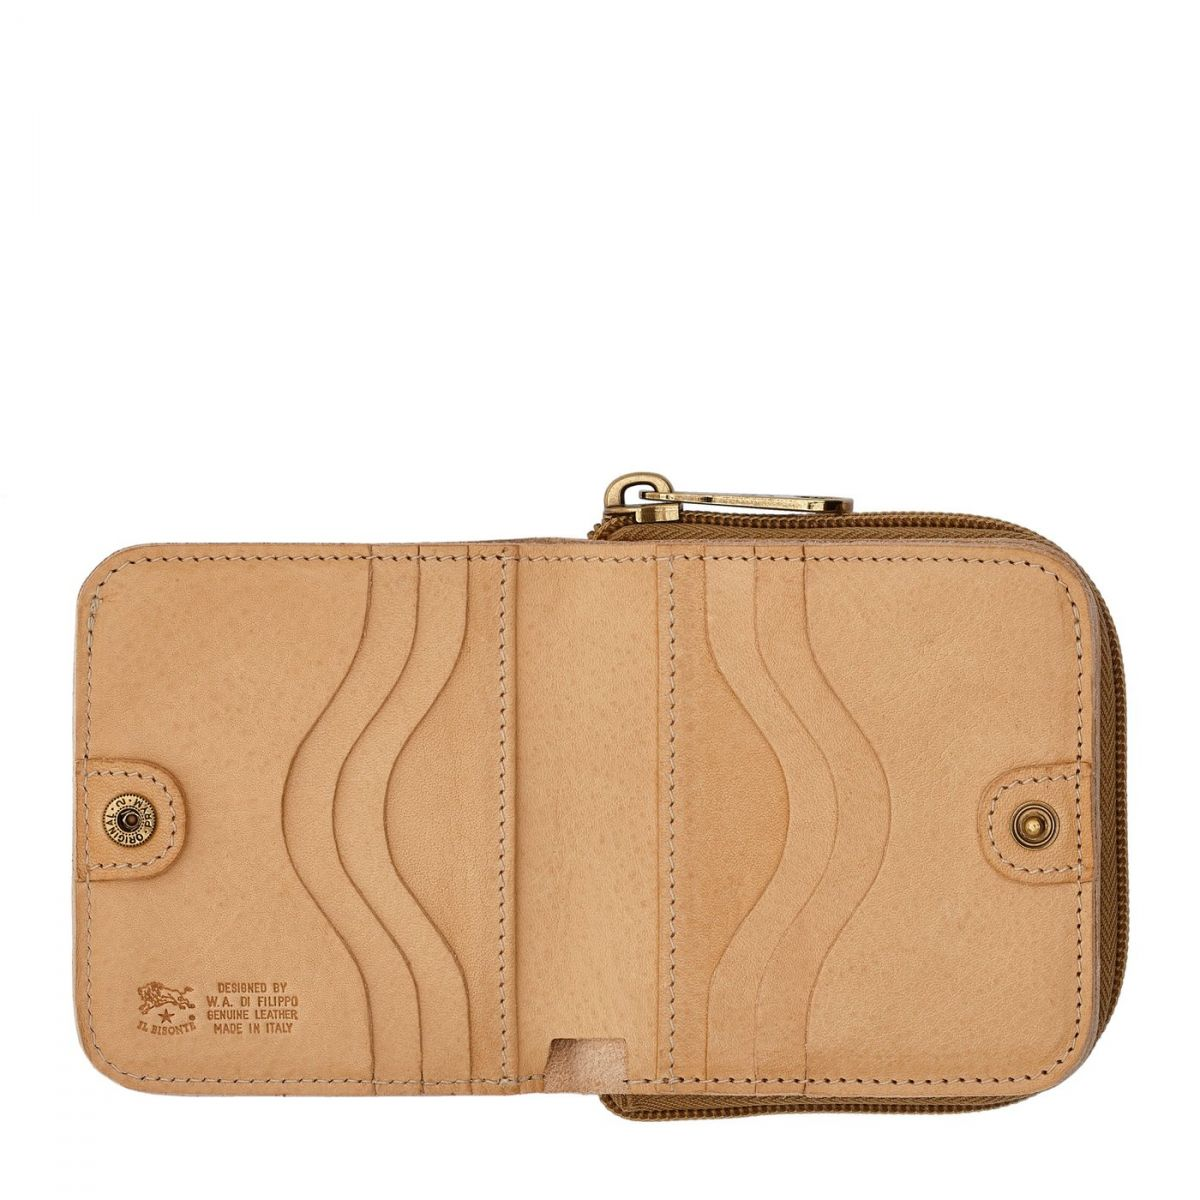 Women's Wallet  in Cowhide Leather SMW117 color Natural | Details